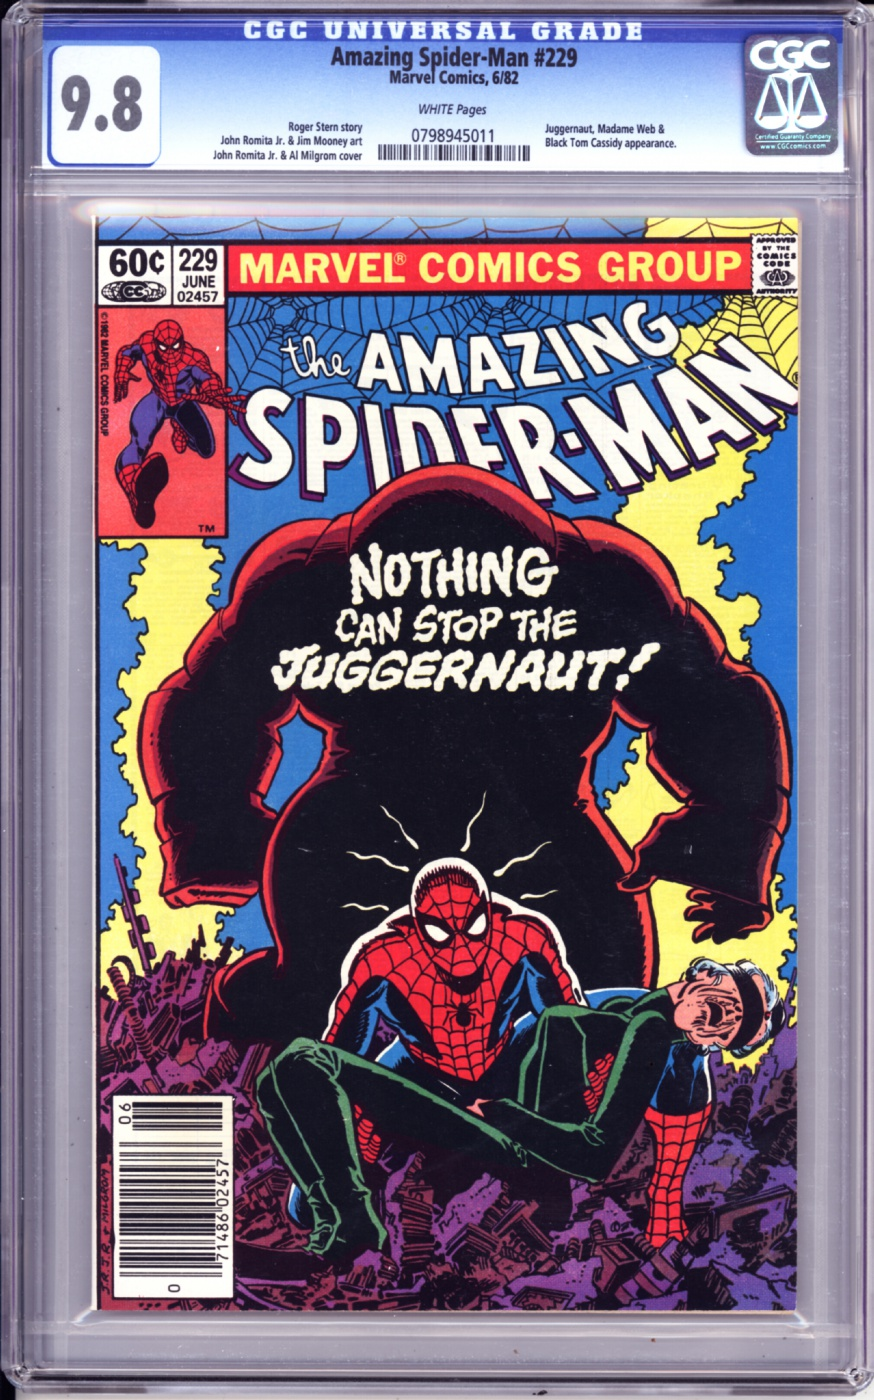 The Long Boxers - Amazing Spider-Man 229 cgc 9.8